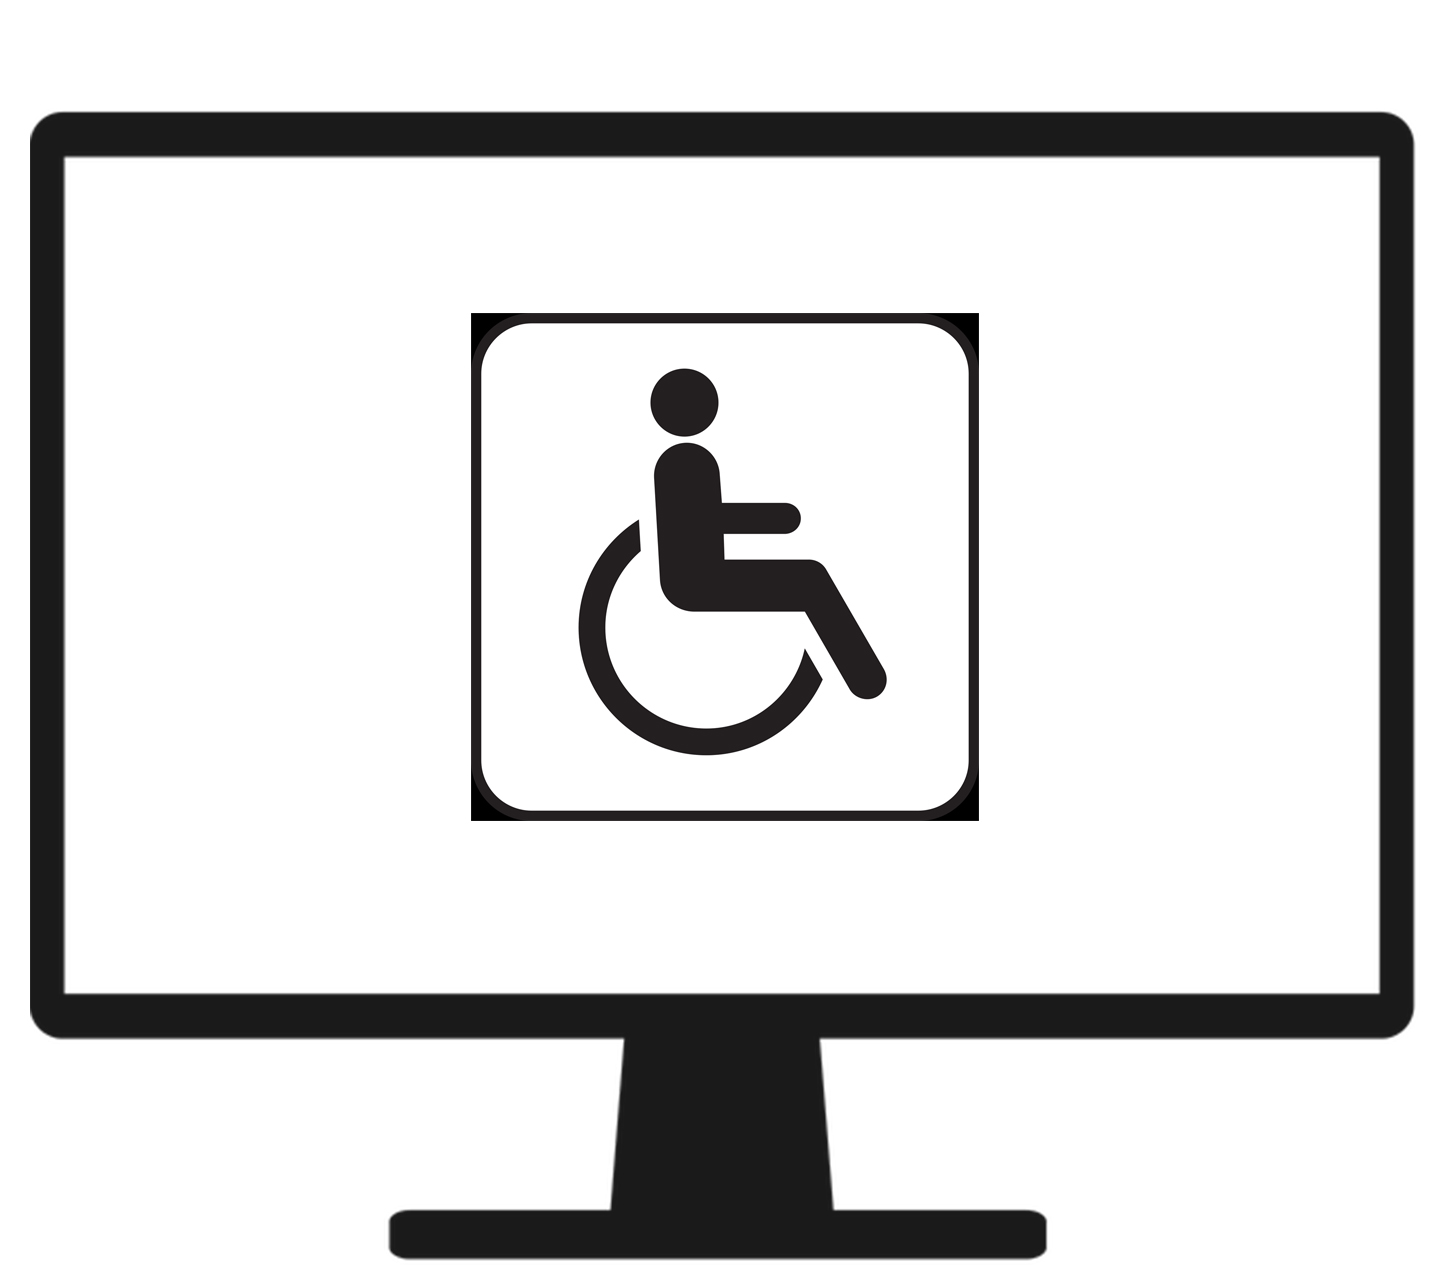 Designing Accessible, Usable, and Inclusive Digital Projects